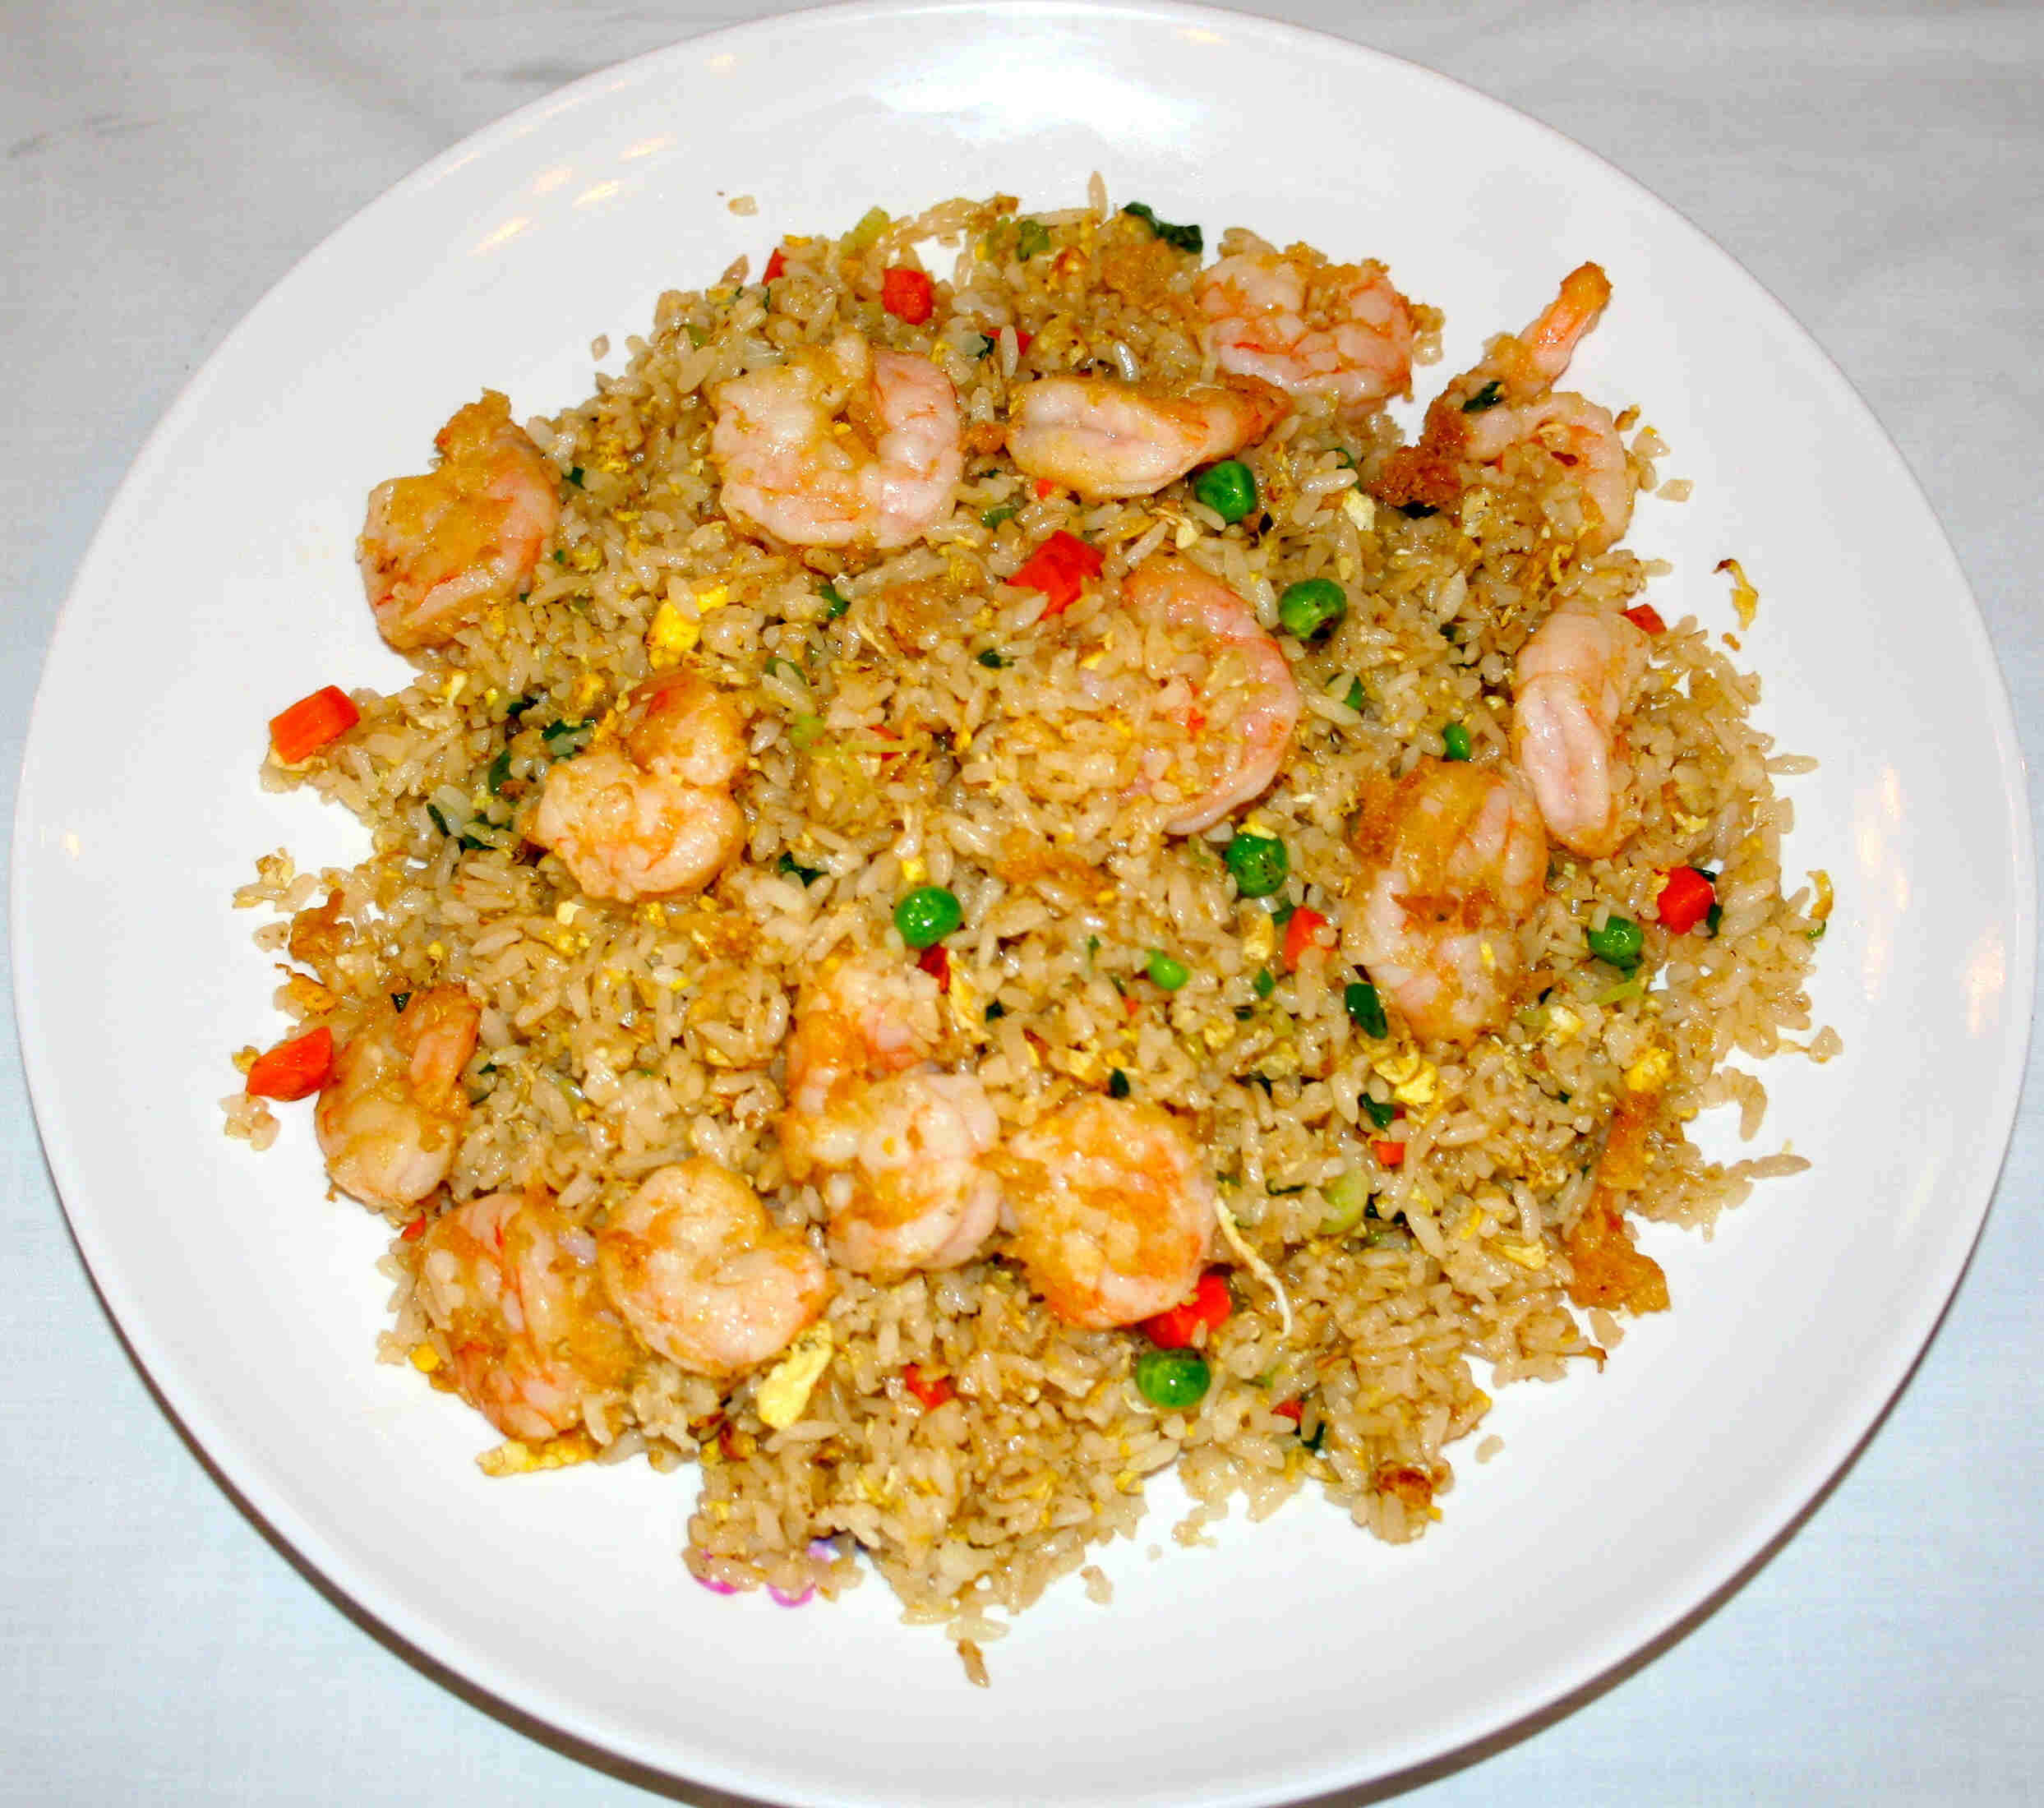 ... fried rice special fried rice with shrimp and chicken lemongrass